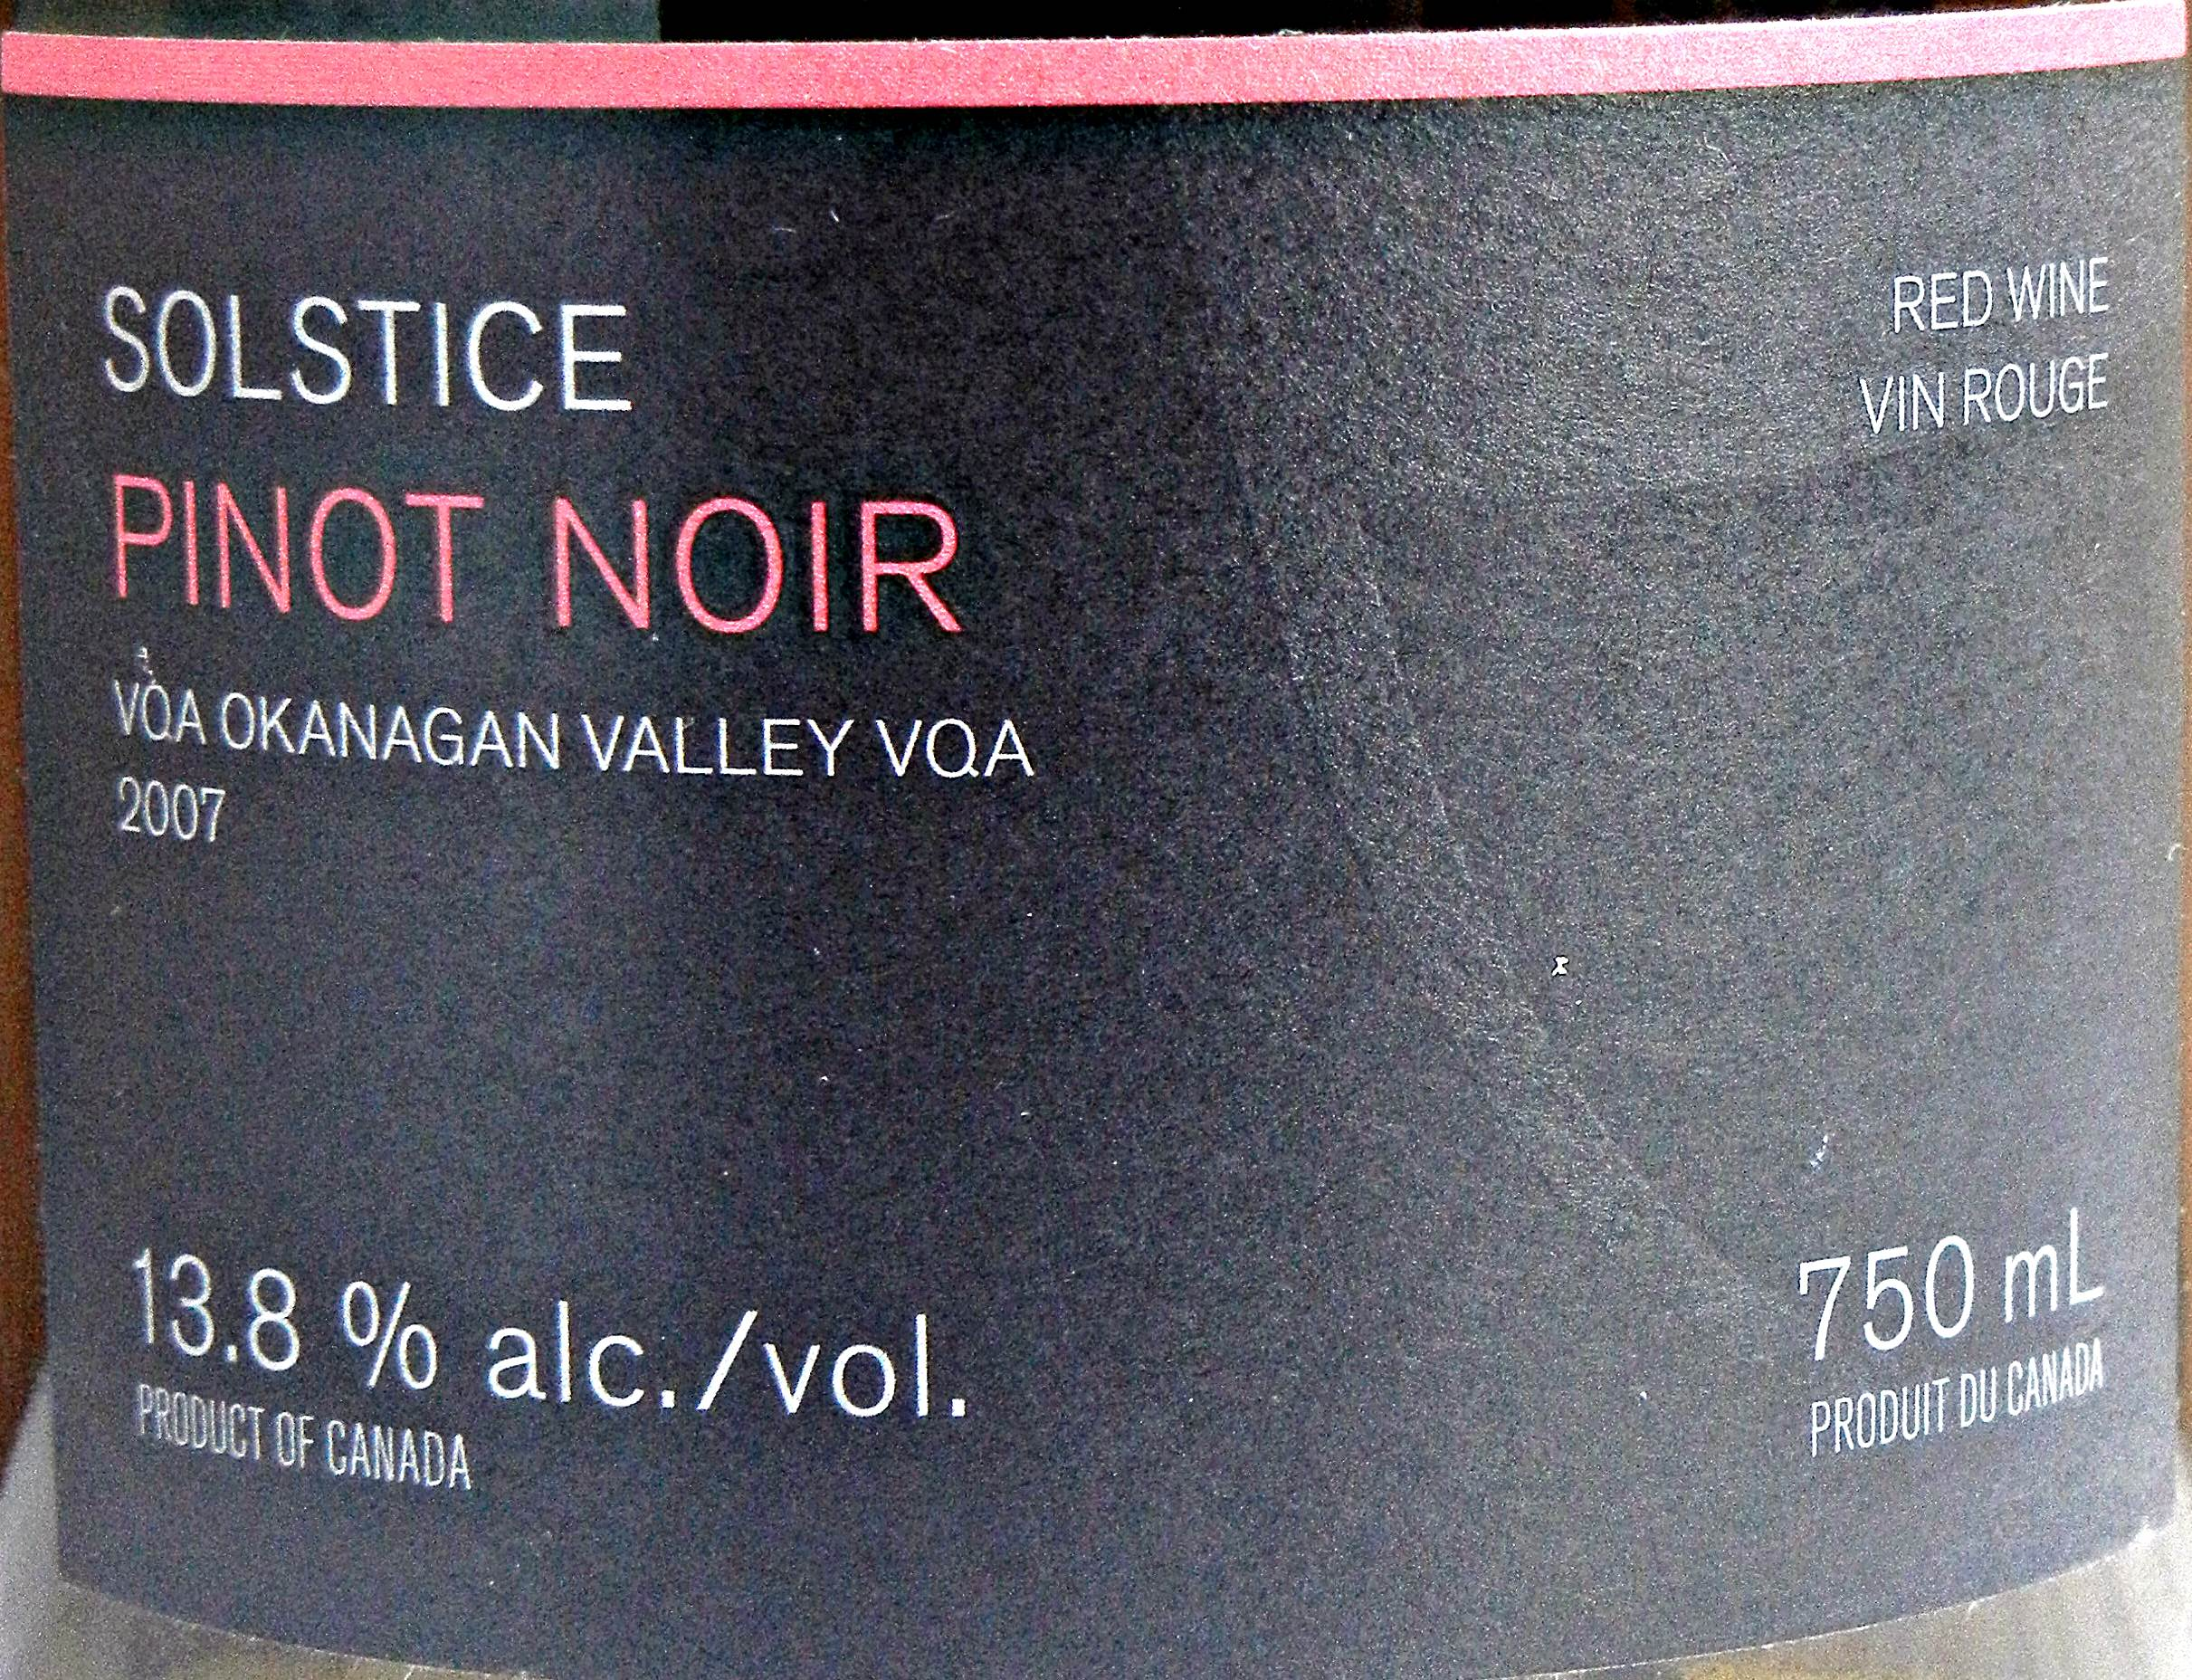 Arrowleaf Solstice Pinot Noir 2007 Label - BC Pinot Noir Tasting Review 23